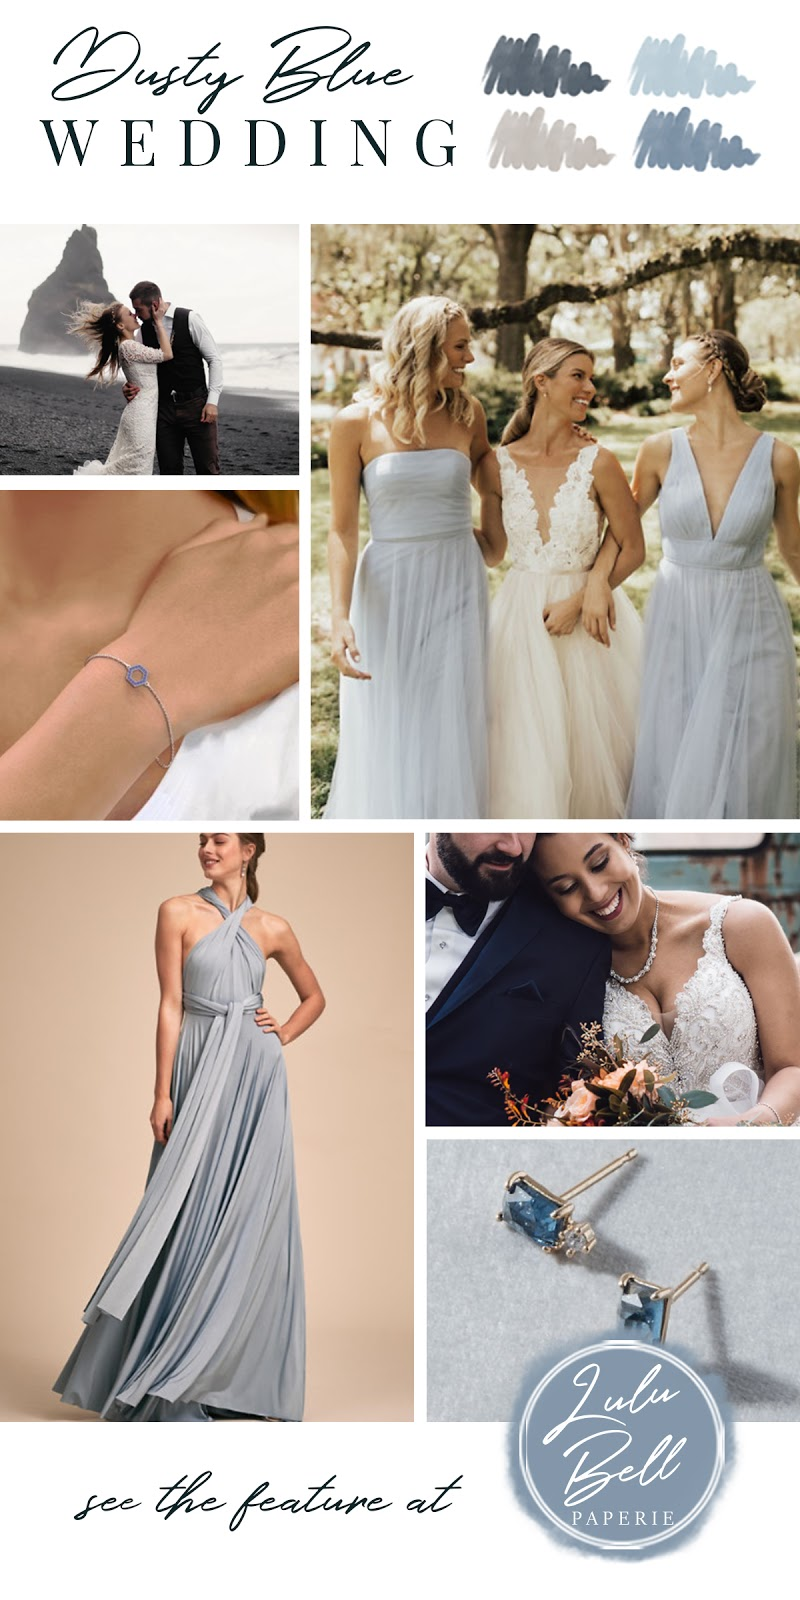 Dusty Blue Navy and Gray Wedding Color Palette Inspiration